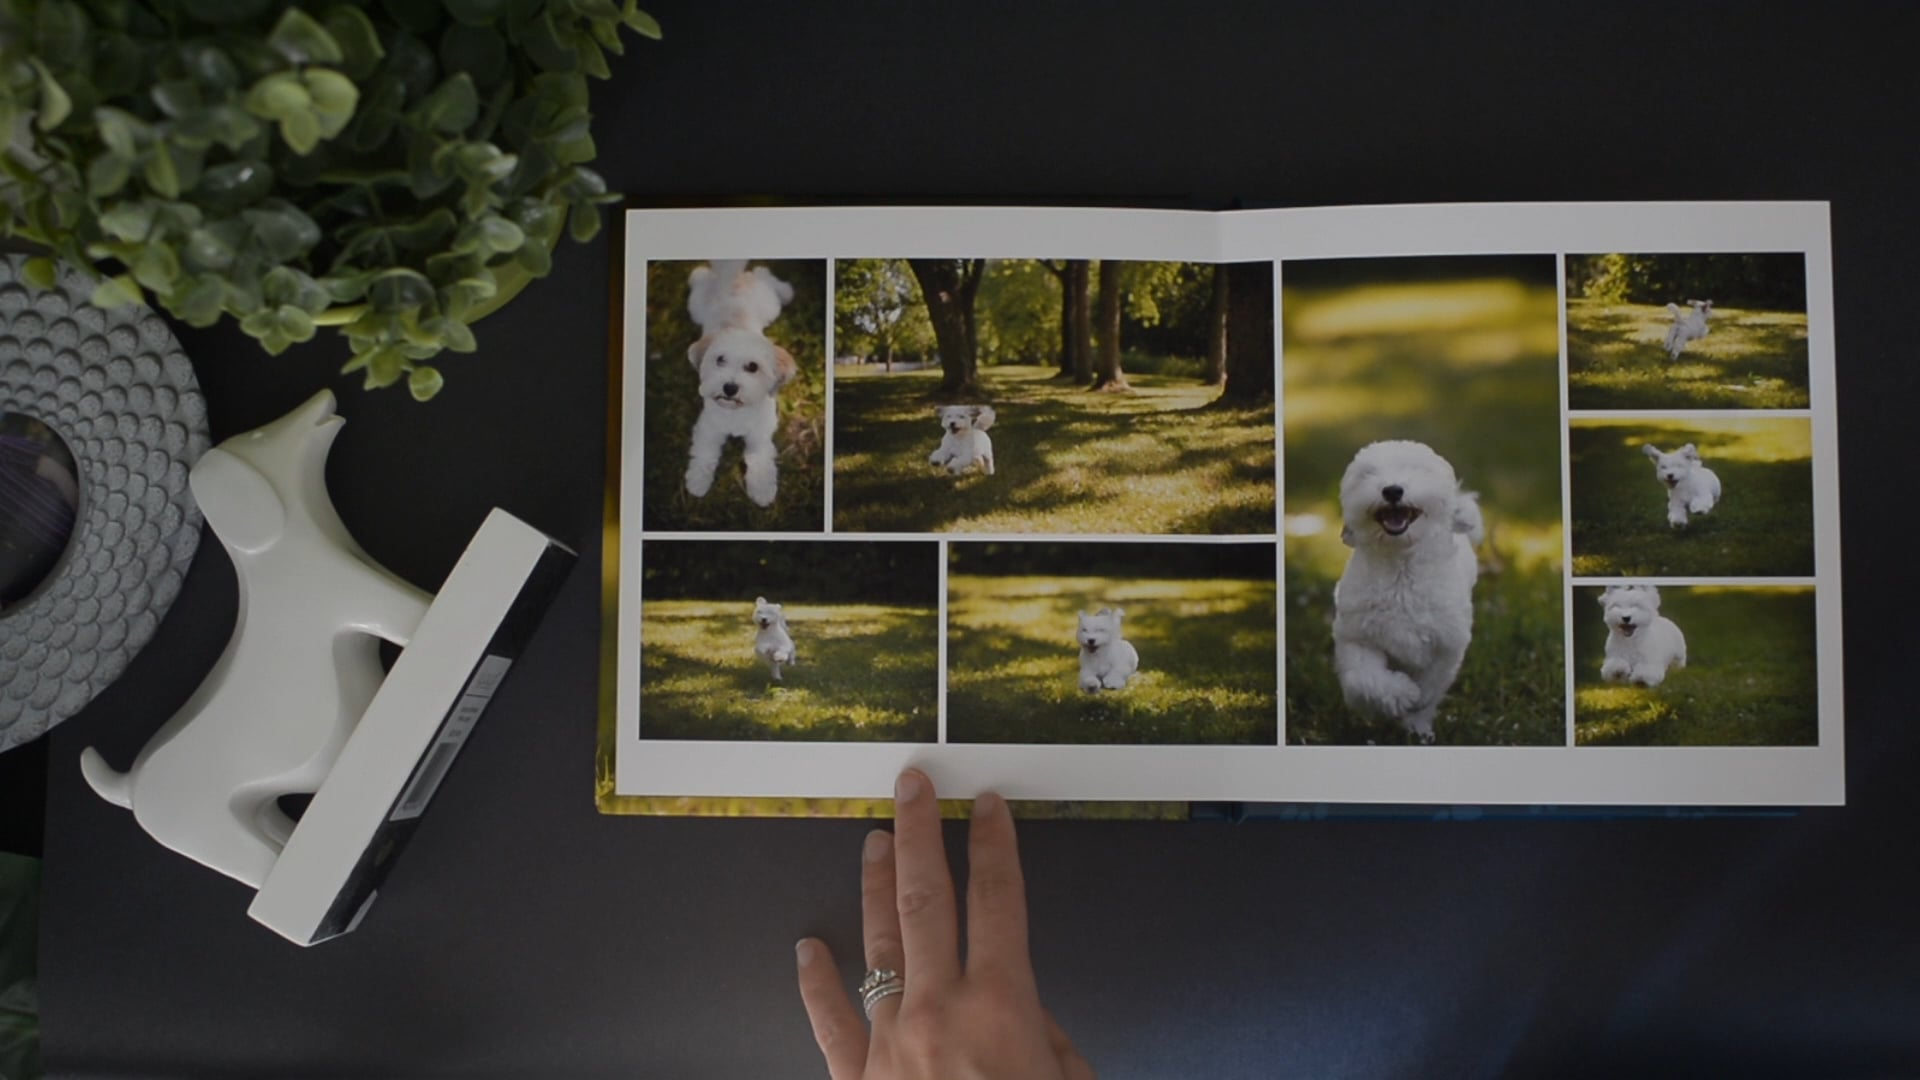 Press to watch a full pet album flip-through